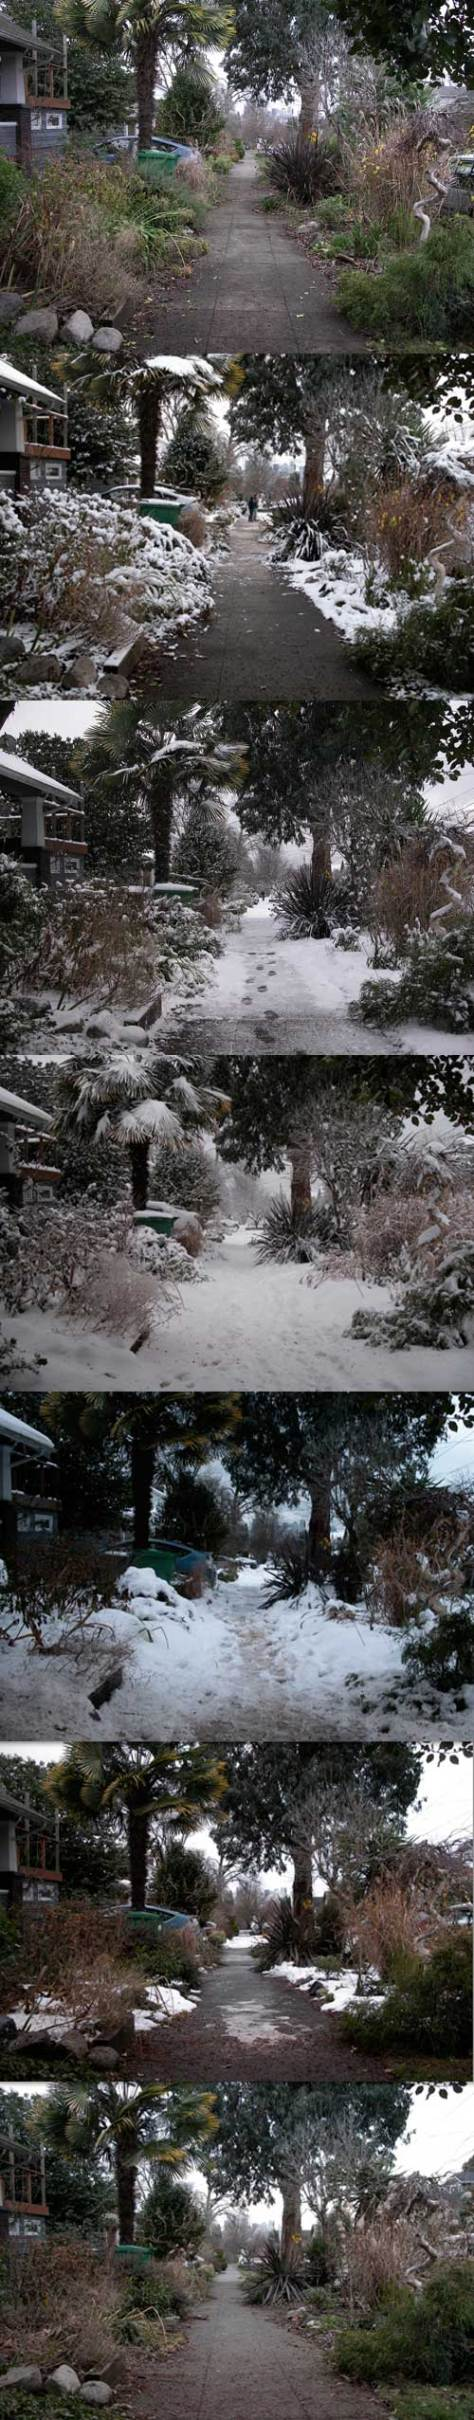 Seven recordings into the Big Snow of 2008.  All look south from near the southeast corner of 43rd Street and Eastern Avenue.  From top to bottom, the dates run: December 13, 14, 18, 21, 24, 27, and 30